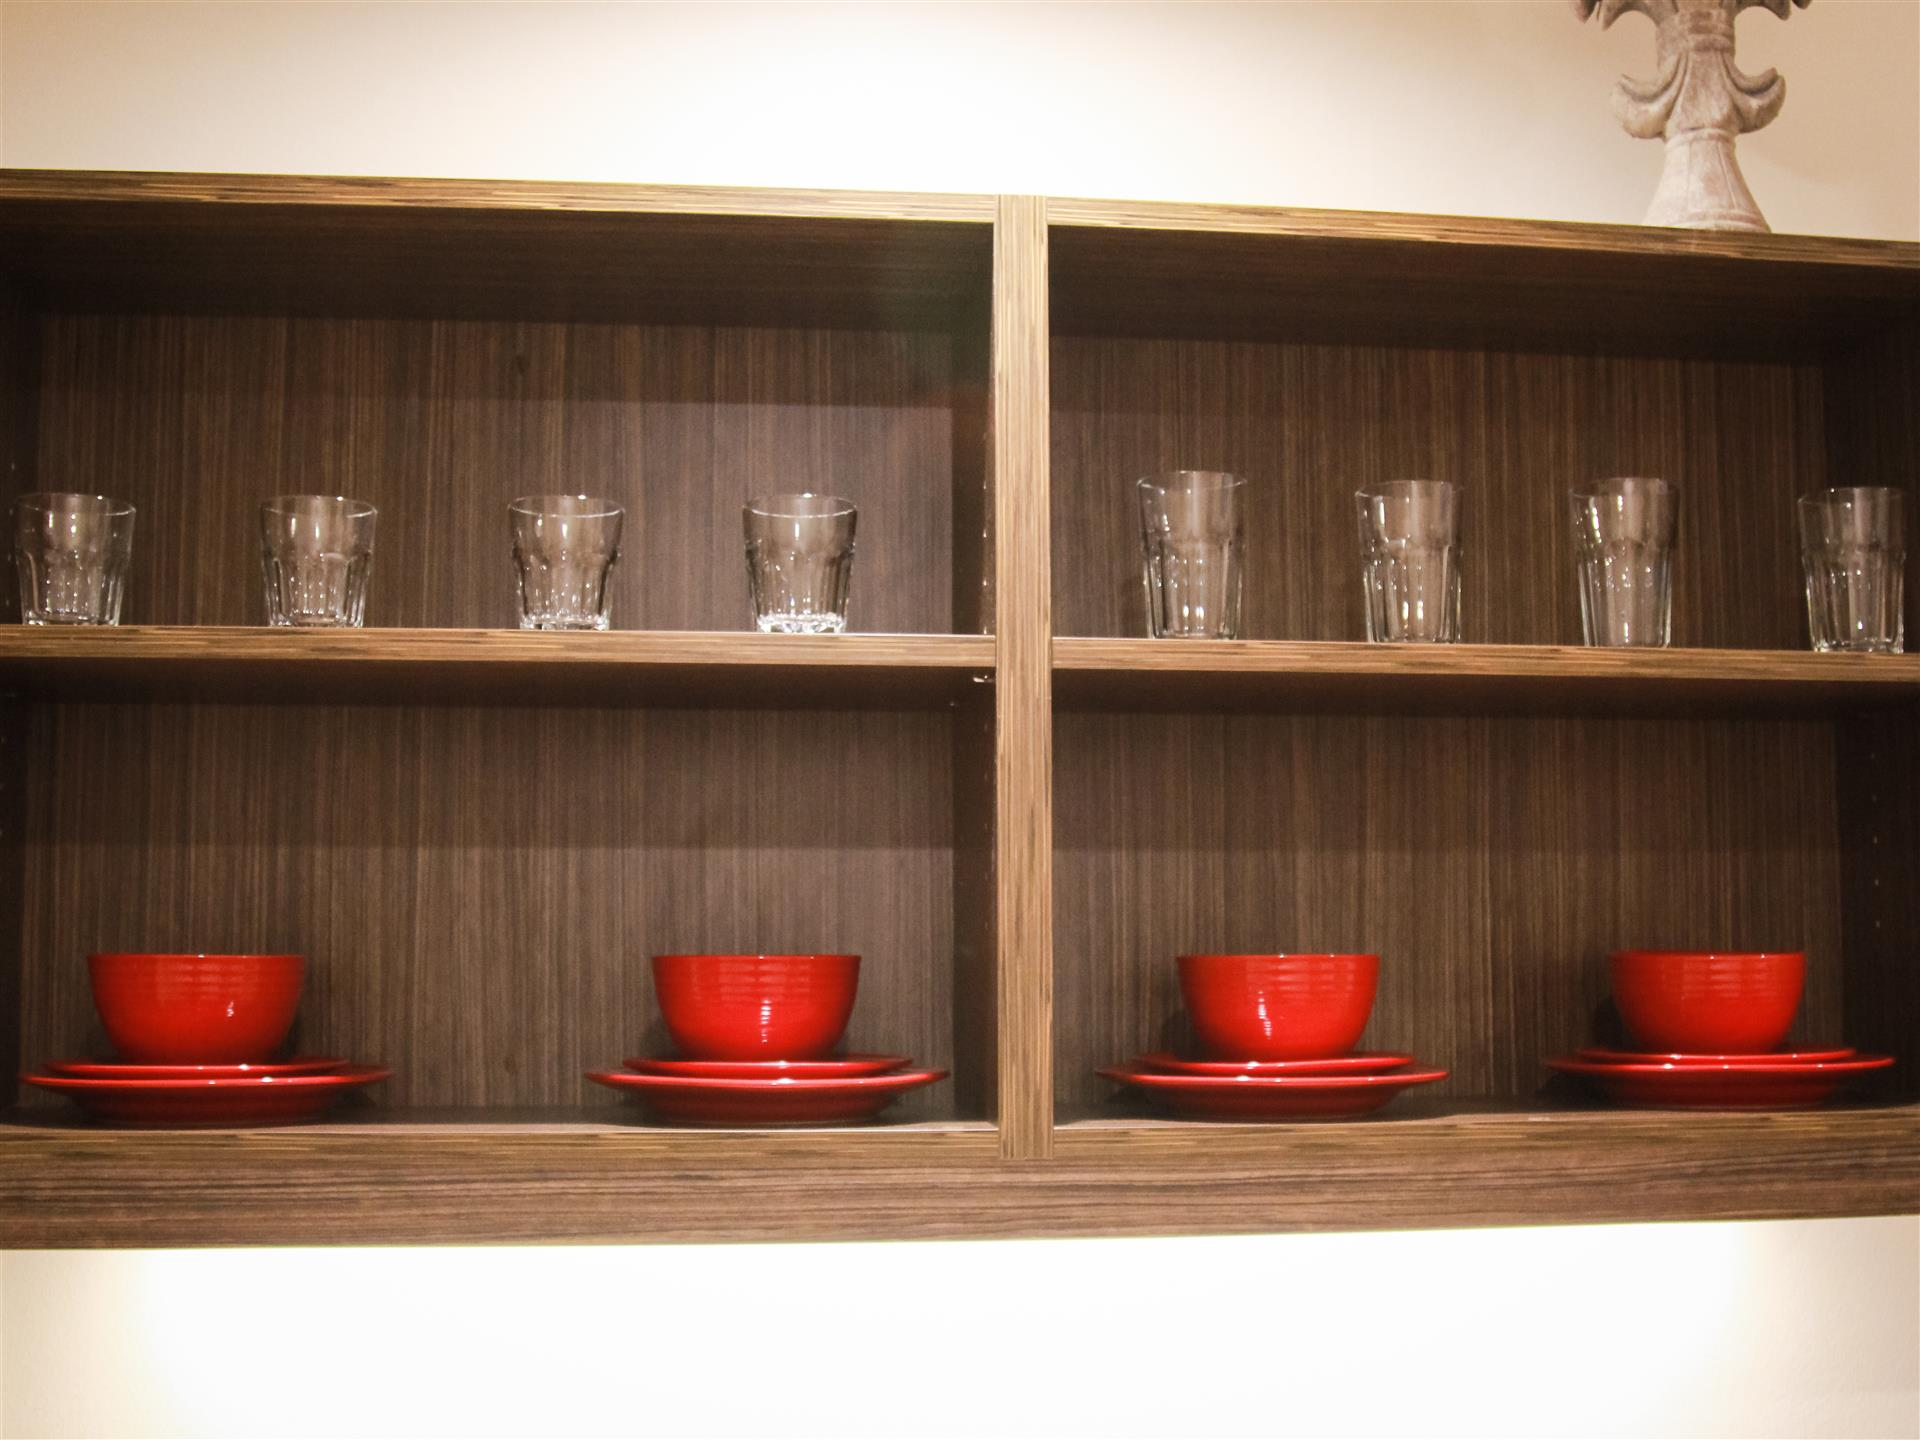 decorative cabinet with mugs and glasses